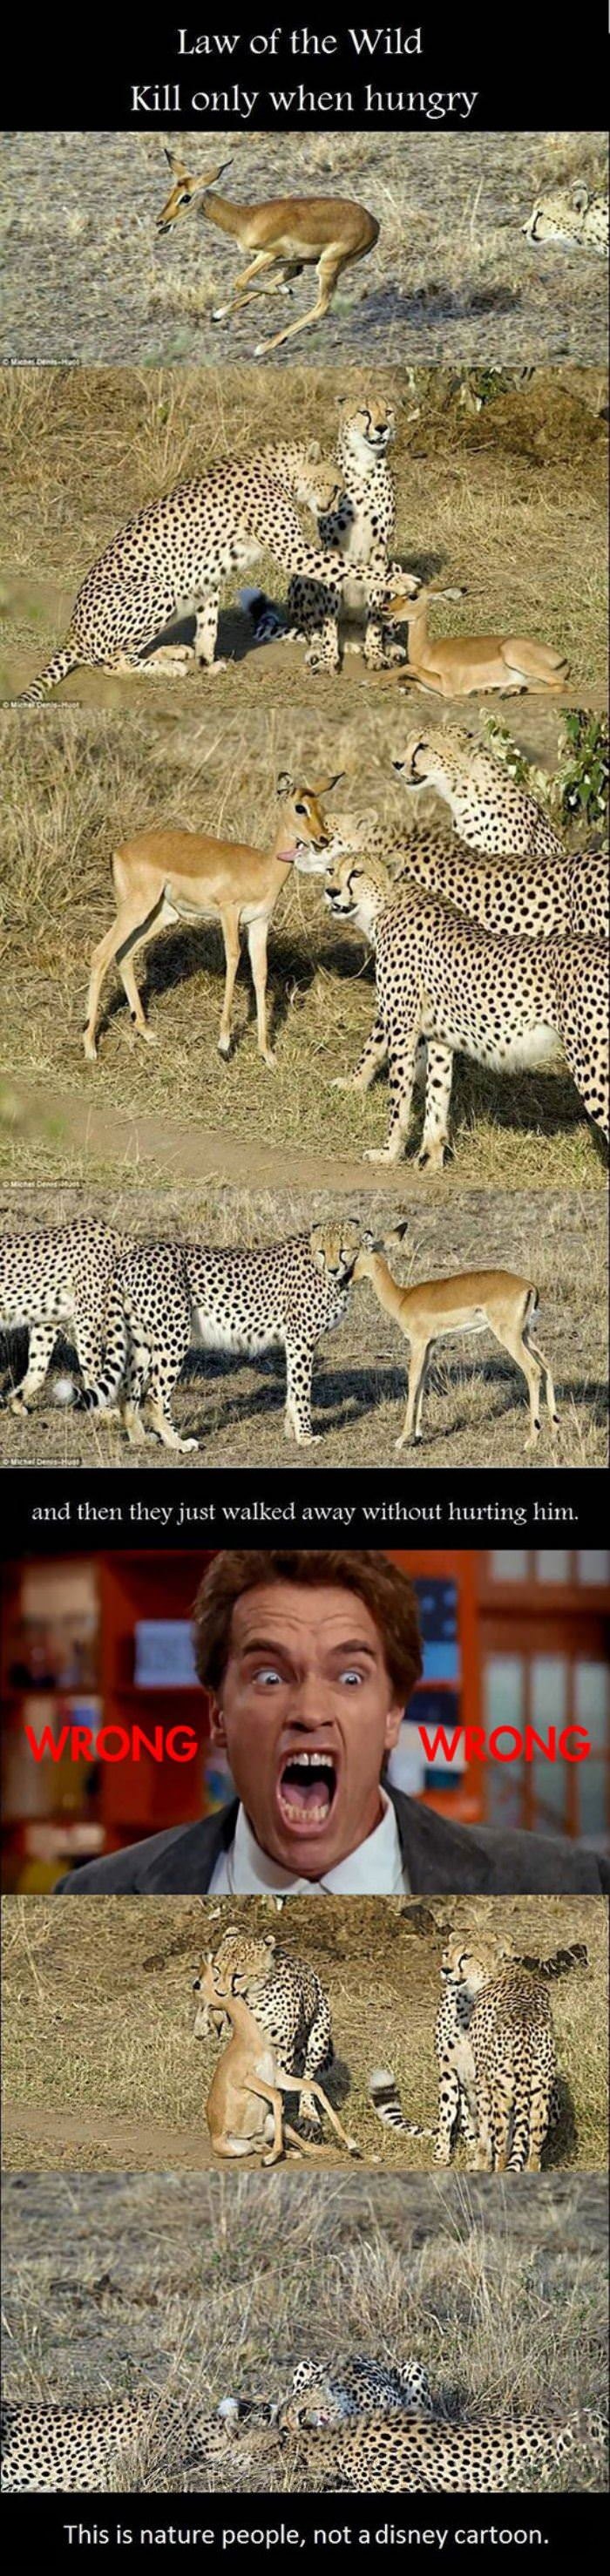 law of the wild funny picture